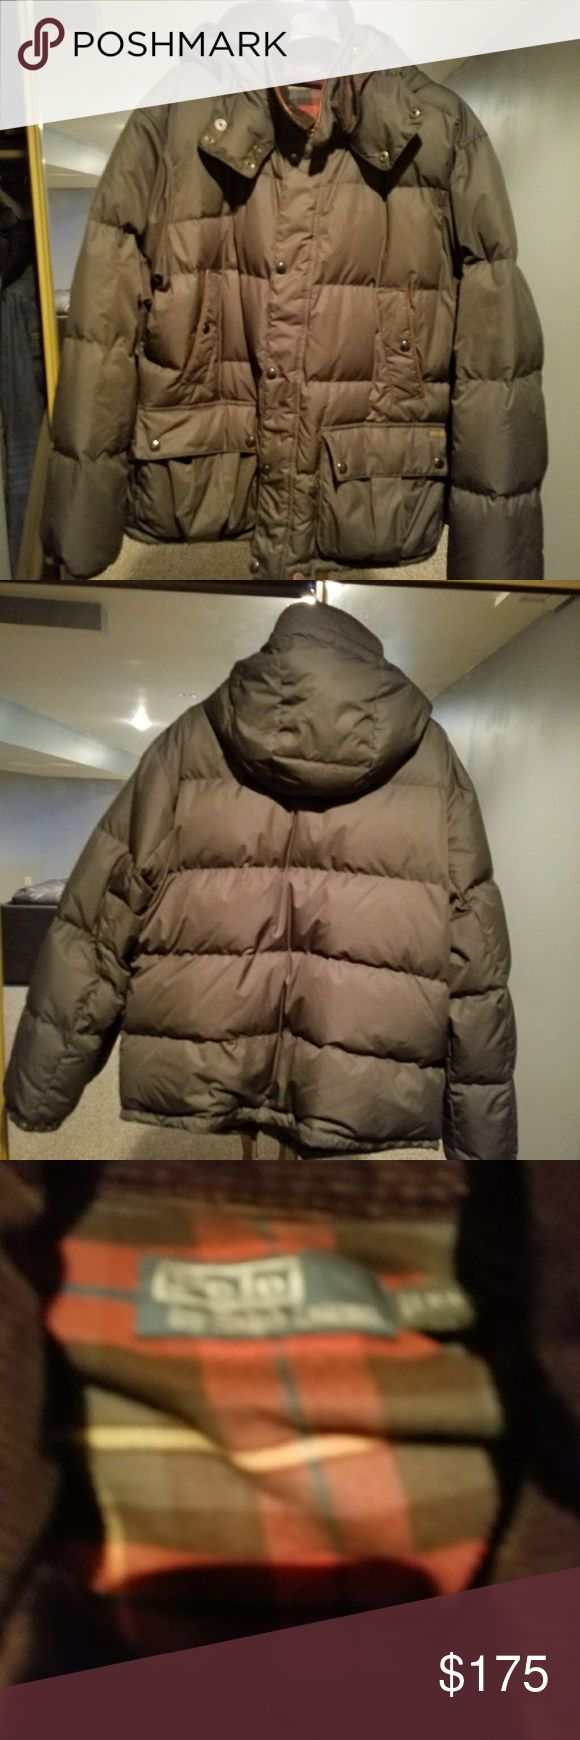 Authentic Polo men's puffer coat Authentic men's puffer coat with hood corduroy around the neck green and plaid in the inside barely worn Polo Jackets & Coats Puffers